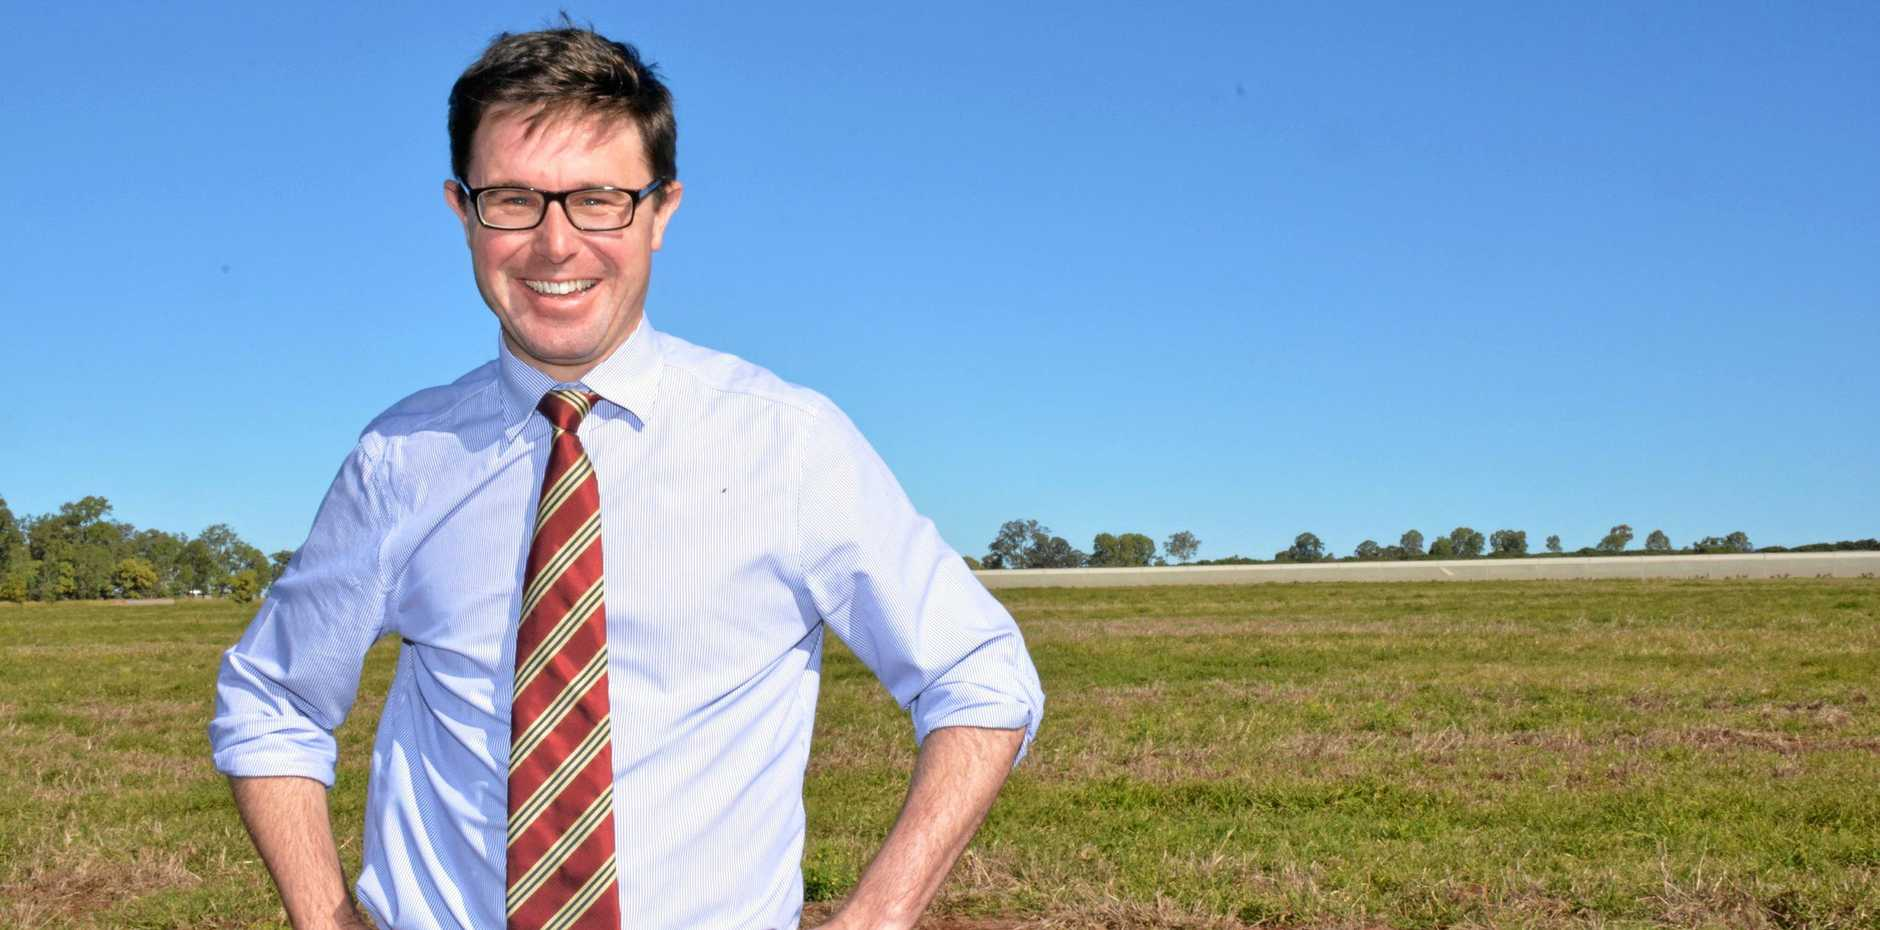 Twitter 'trolls' have apologised and retracted comments made about Maranoa MP David Littleproud on social media.